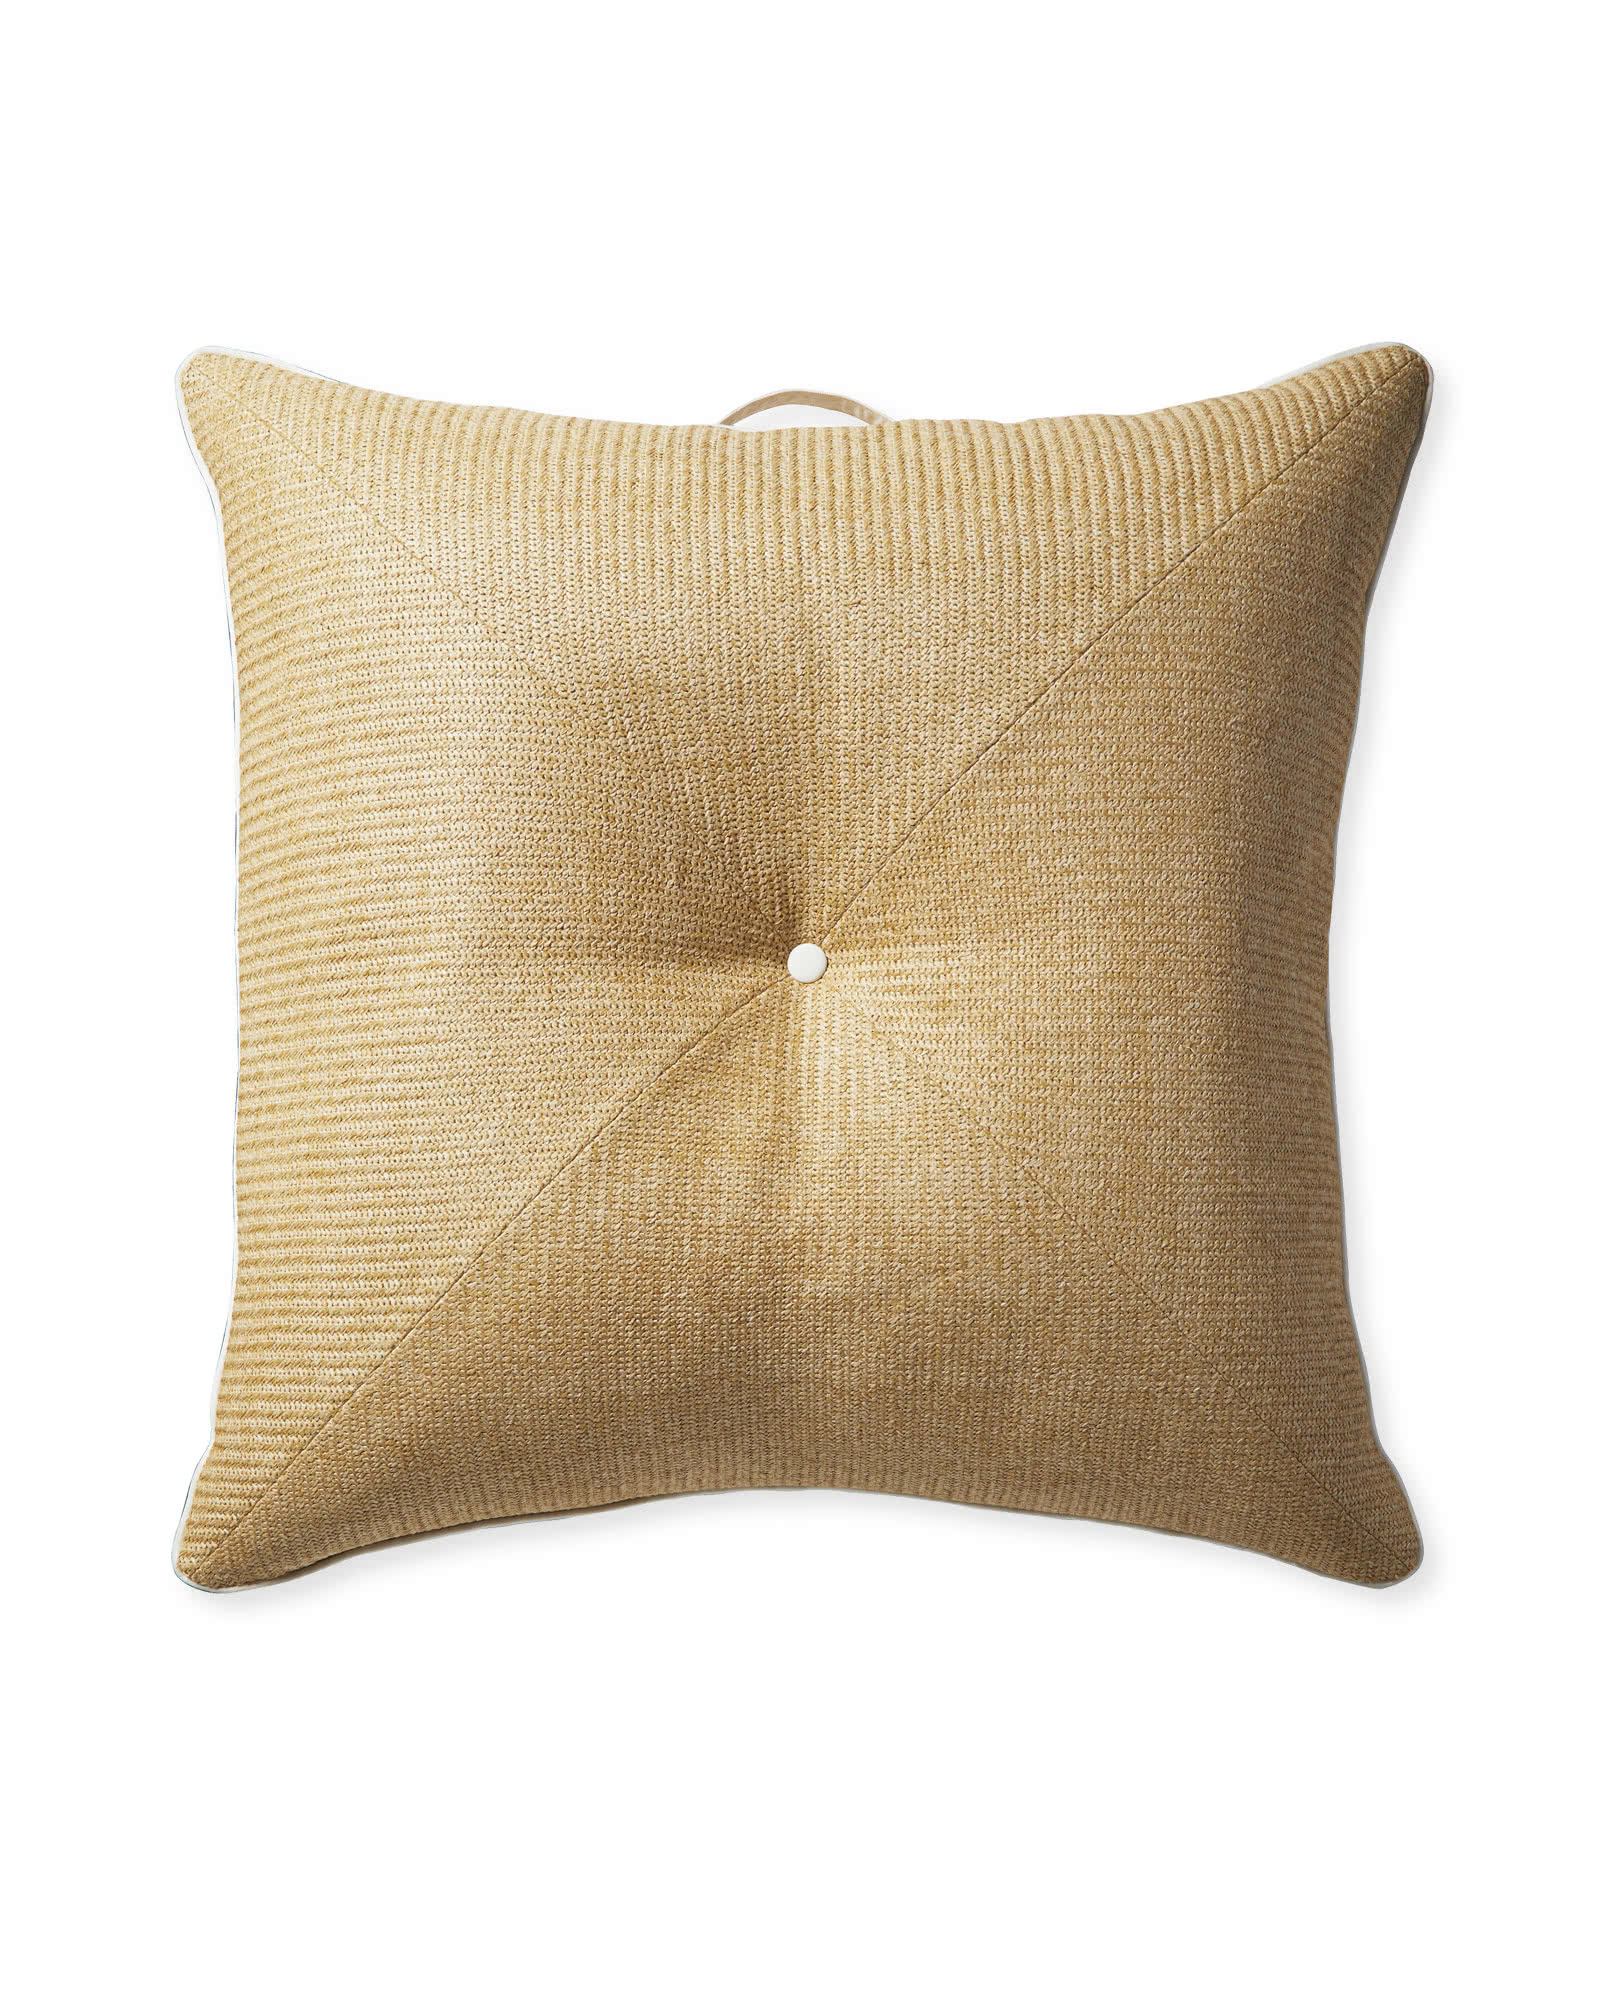 Harbour Island Floor Pillow - Raffia,